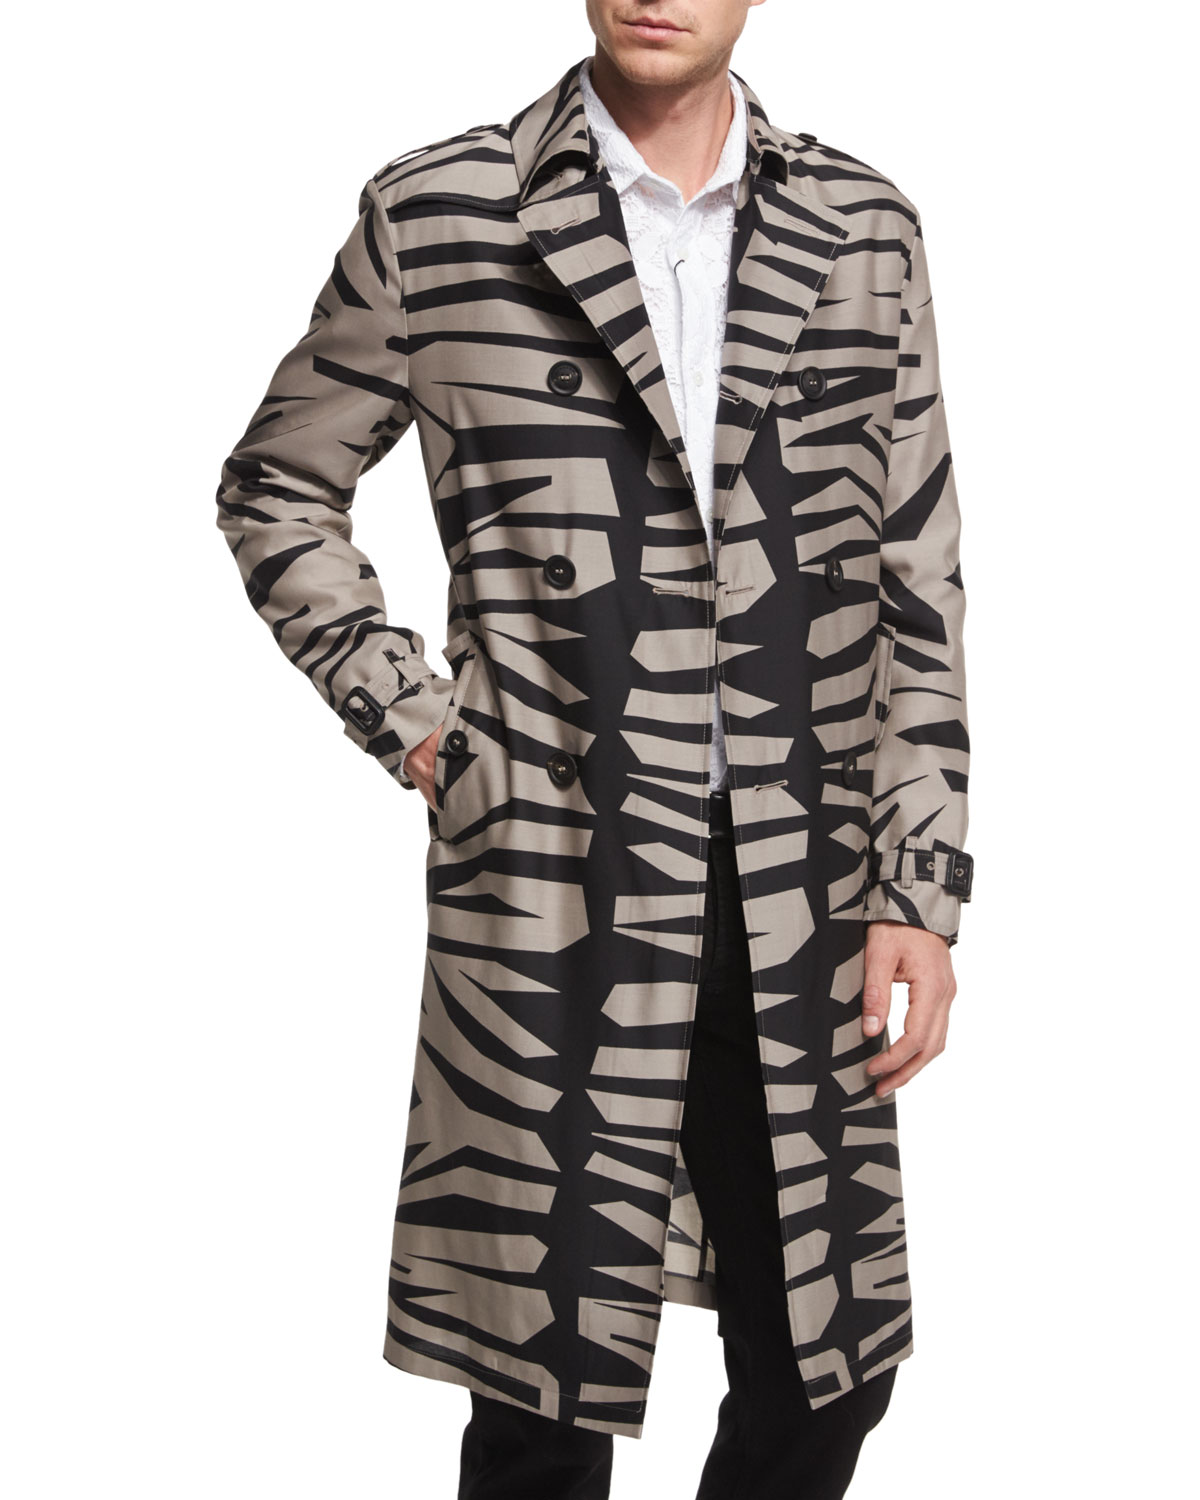 Zebra-Print Silk-Blend Long Trench Coat, Taupe Gray/Black